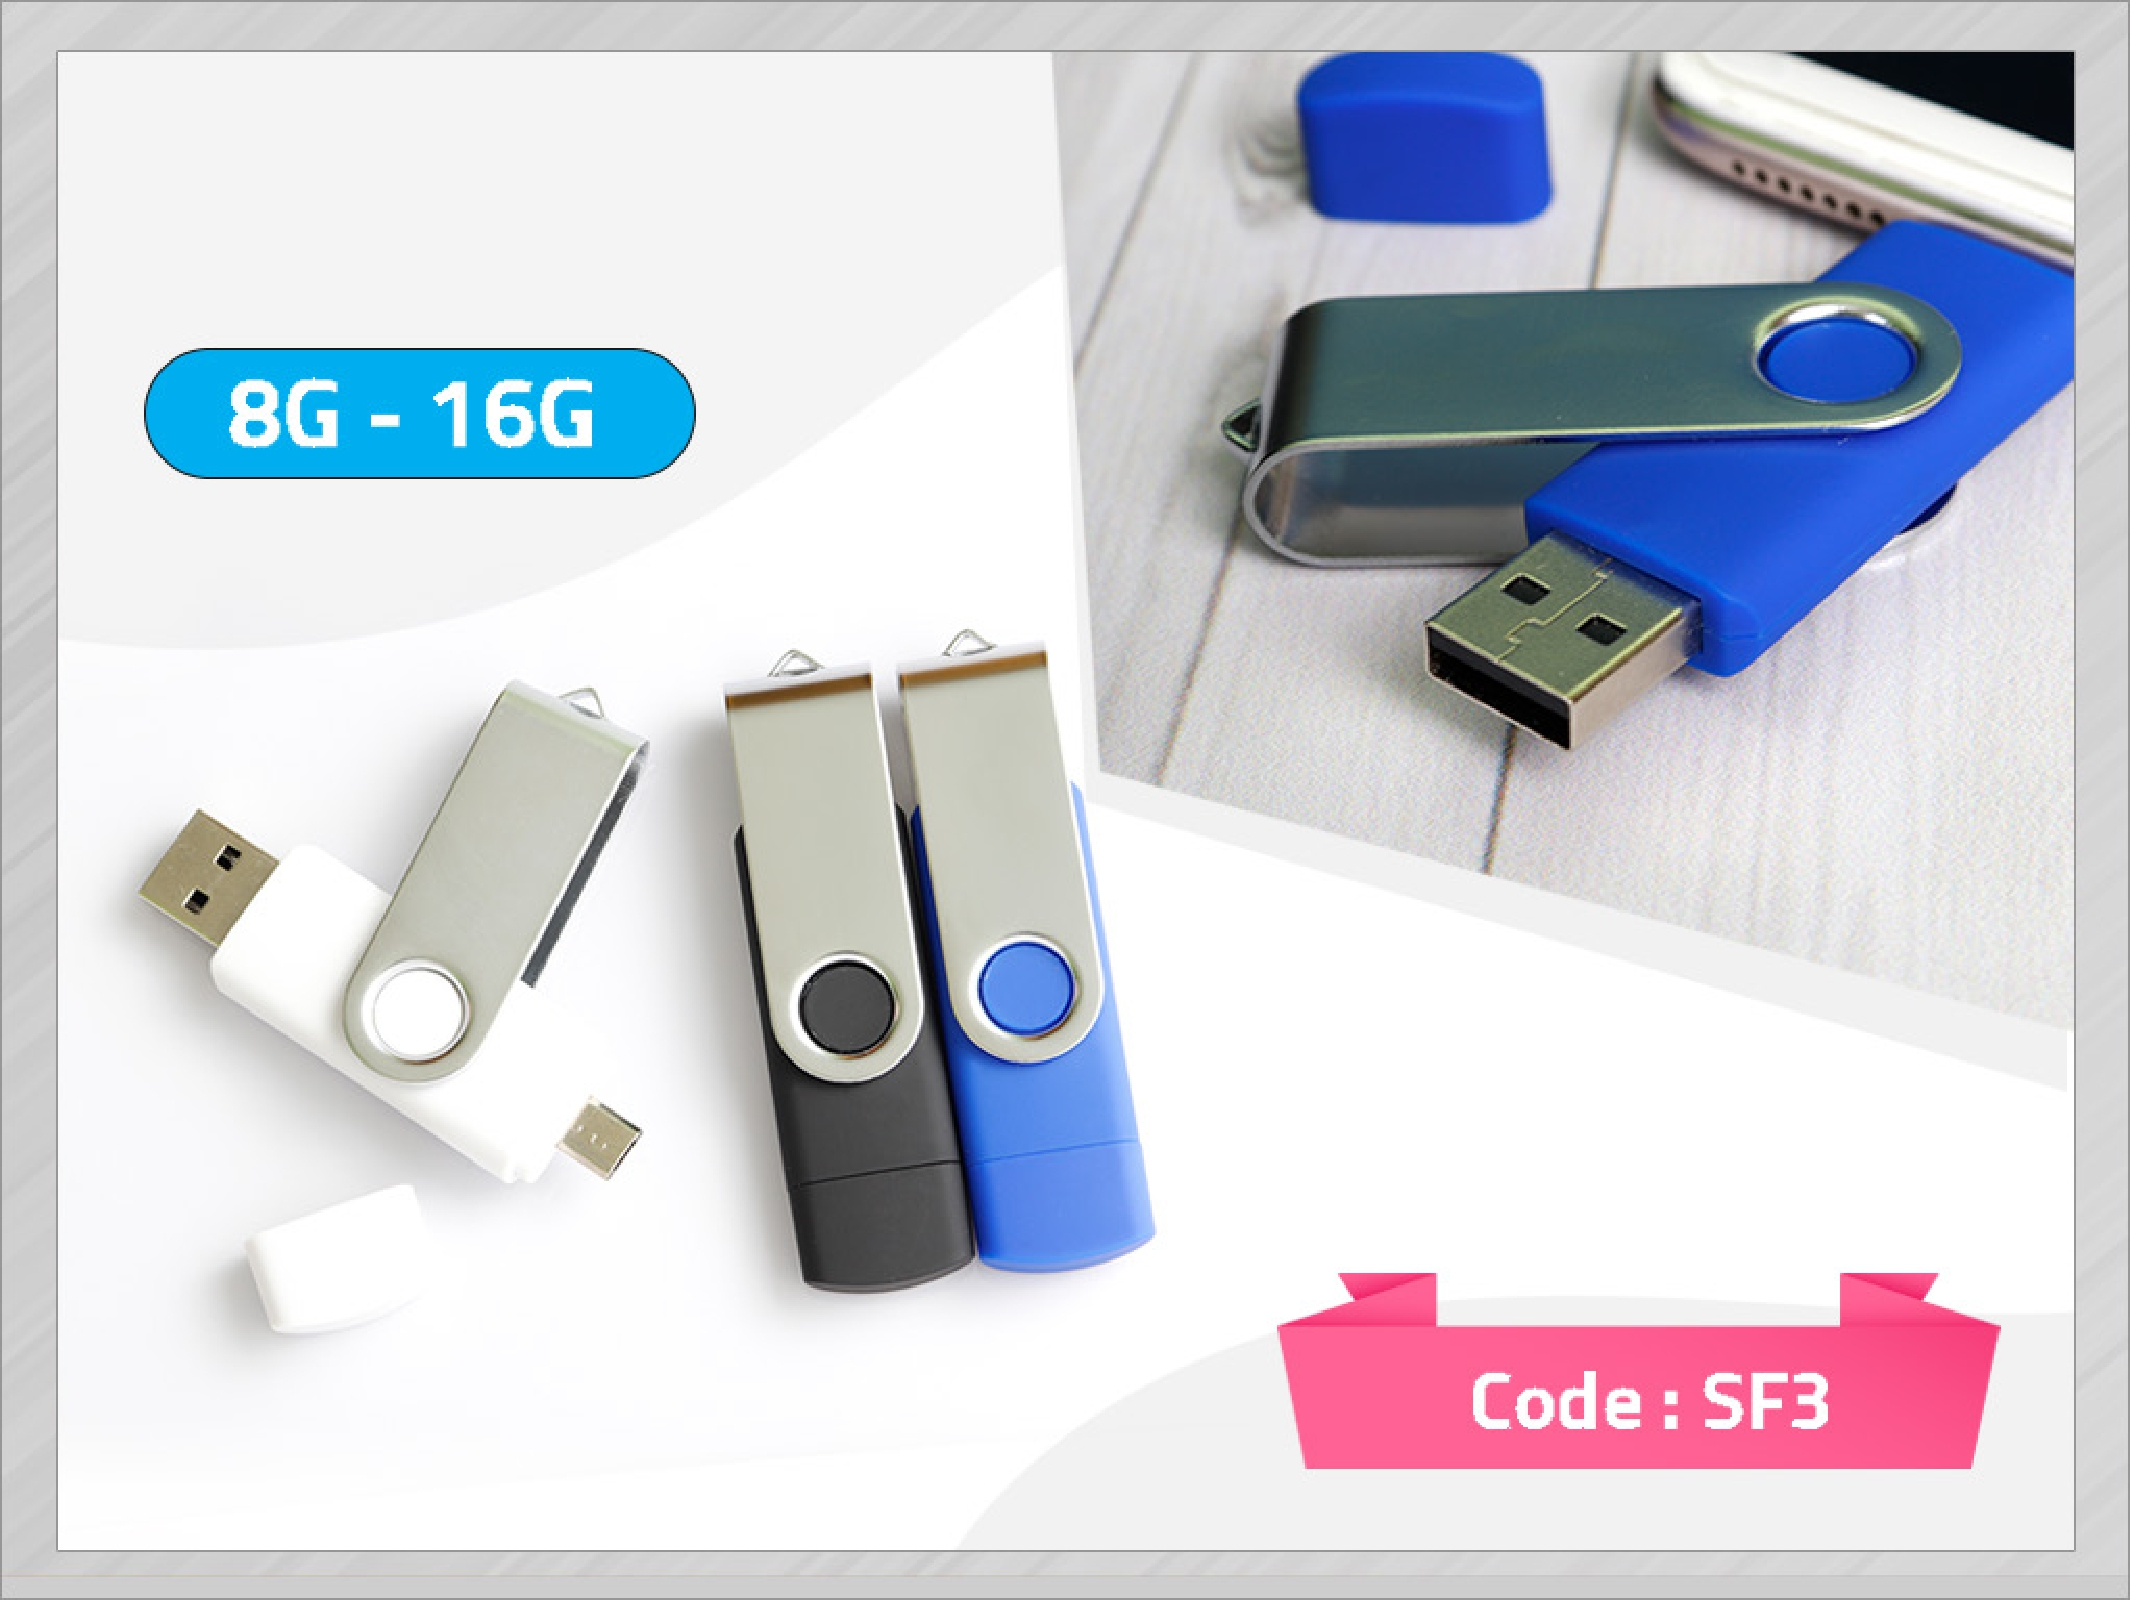 3-usb-flash-34-new_page-0027